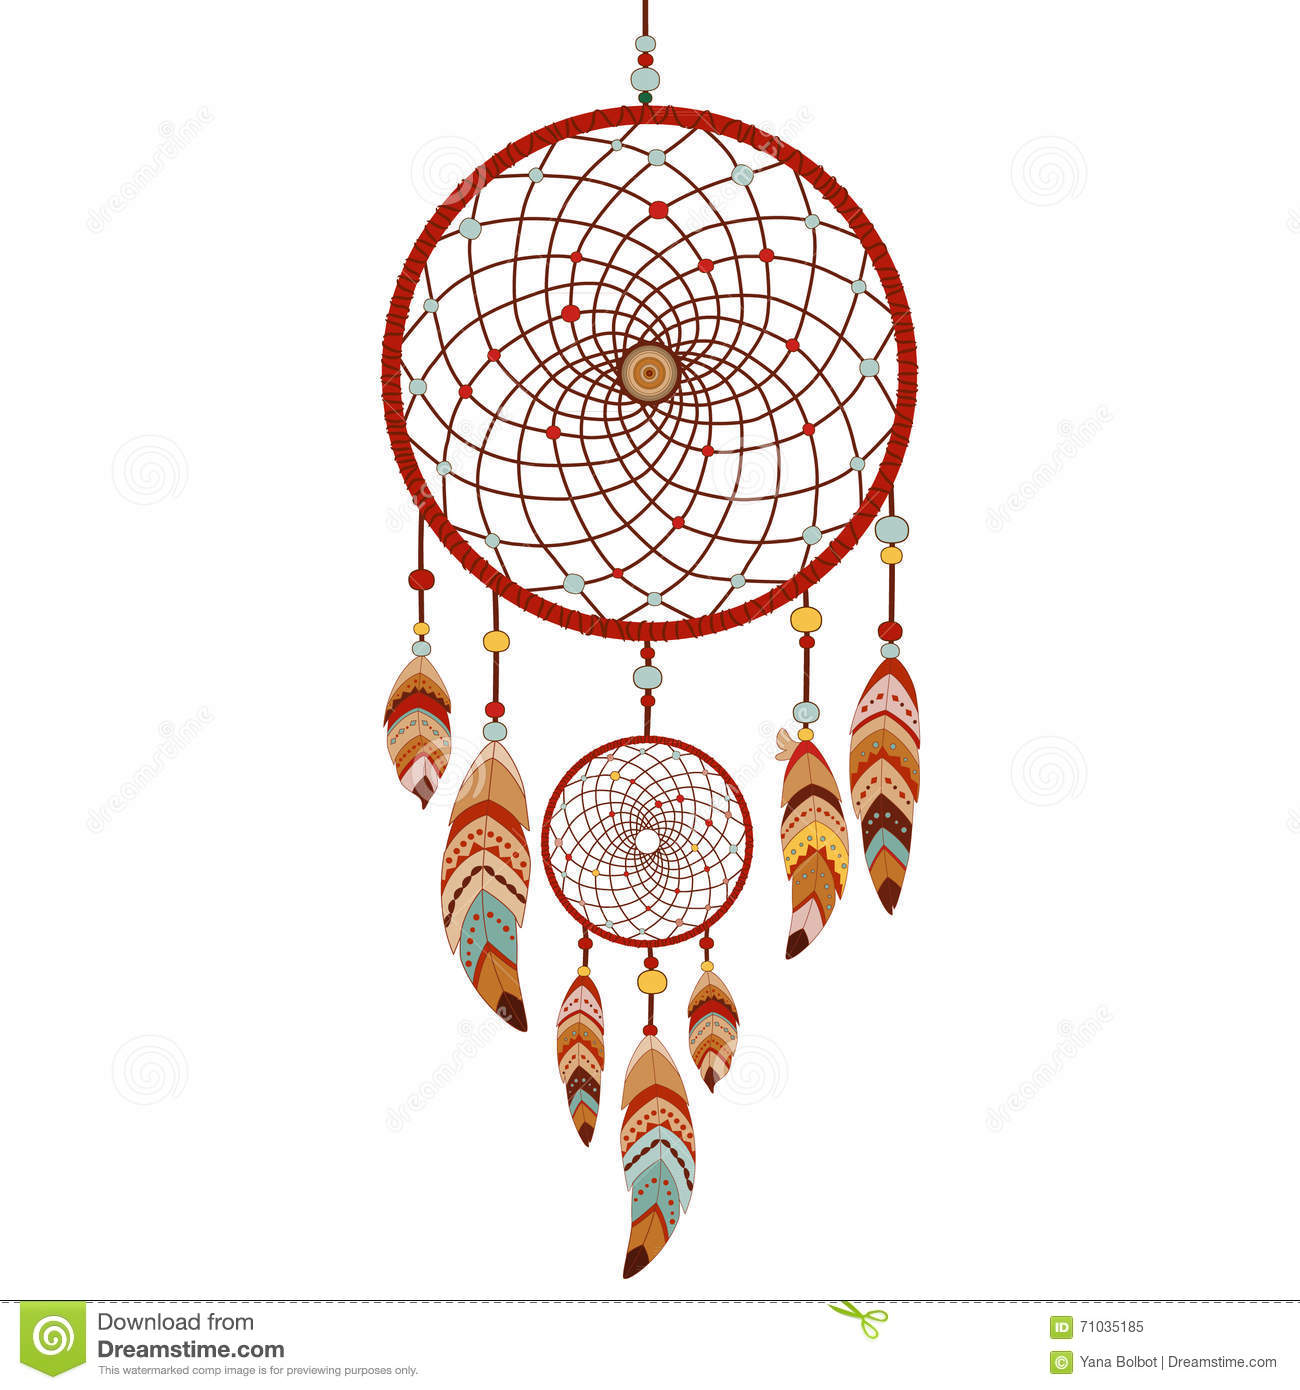 Pictures Of Dream Catchers: Dreamcatcher Colorful Logo Stock Vector. Illustration Of